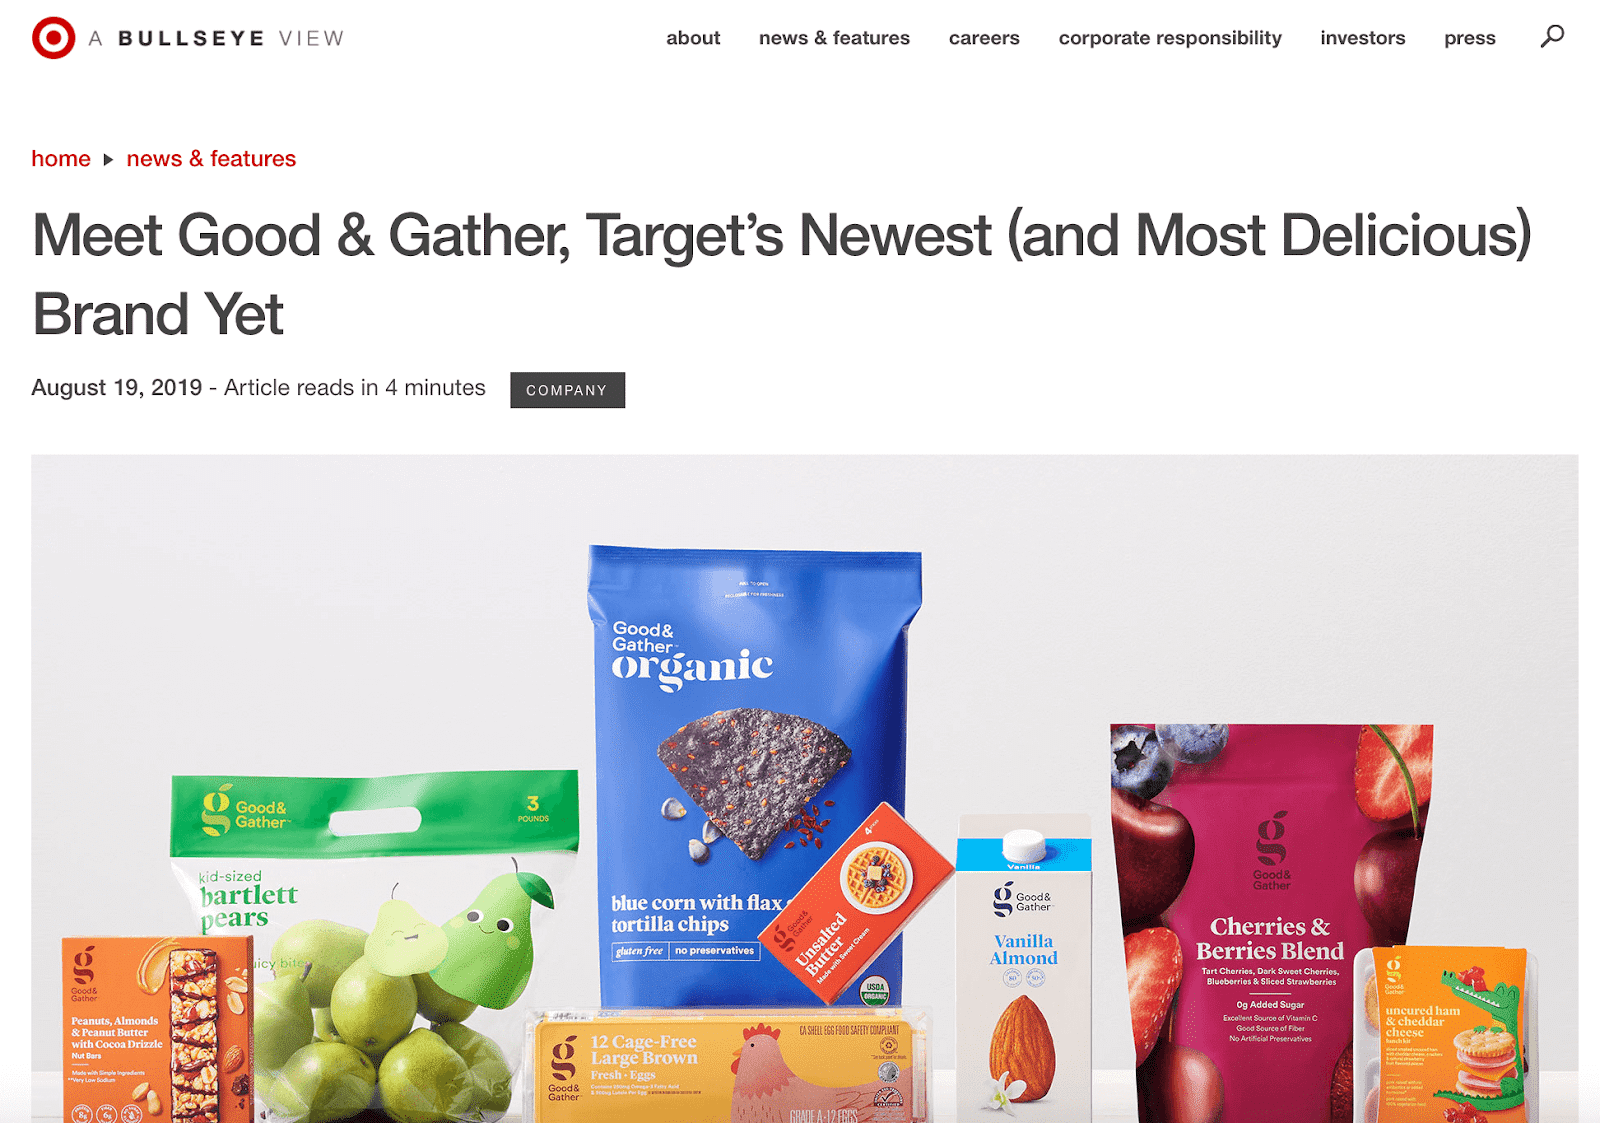 Targets Private Label Brand Good Gather